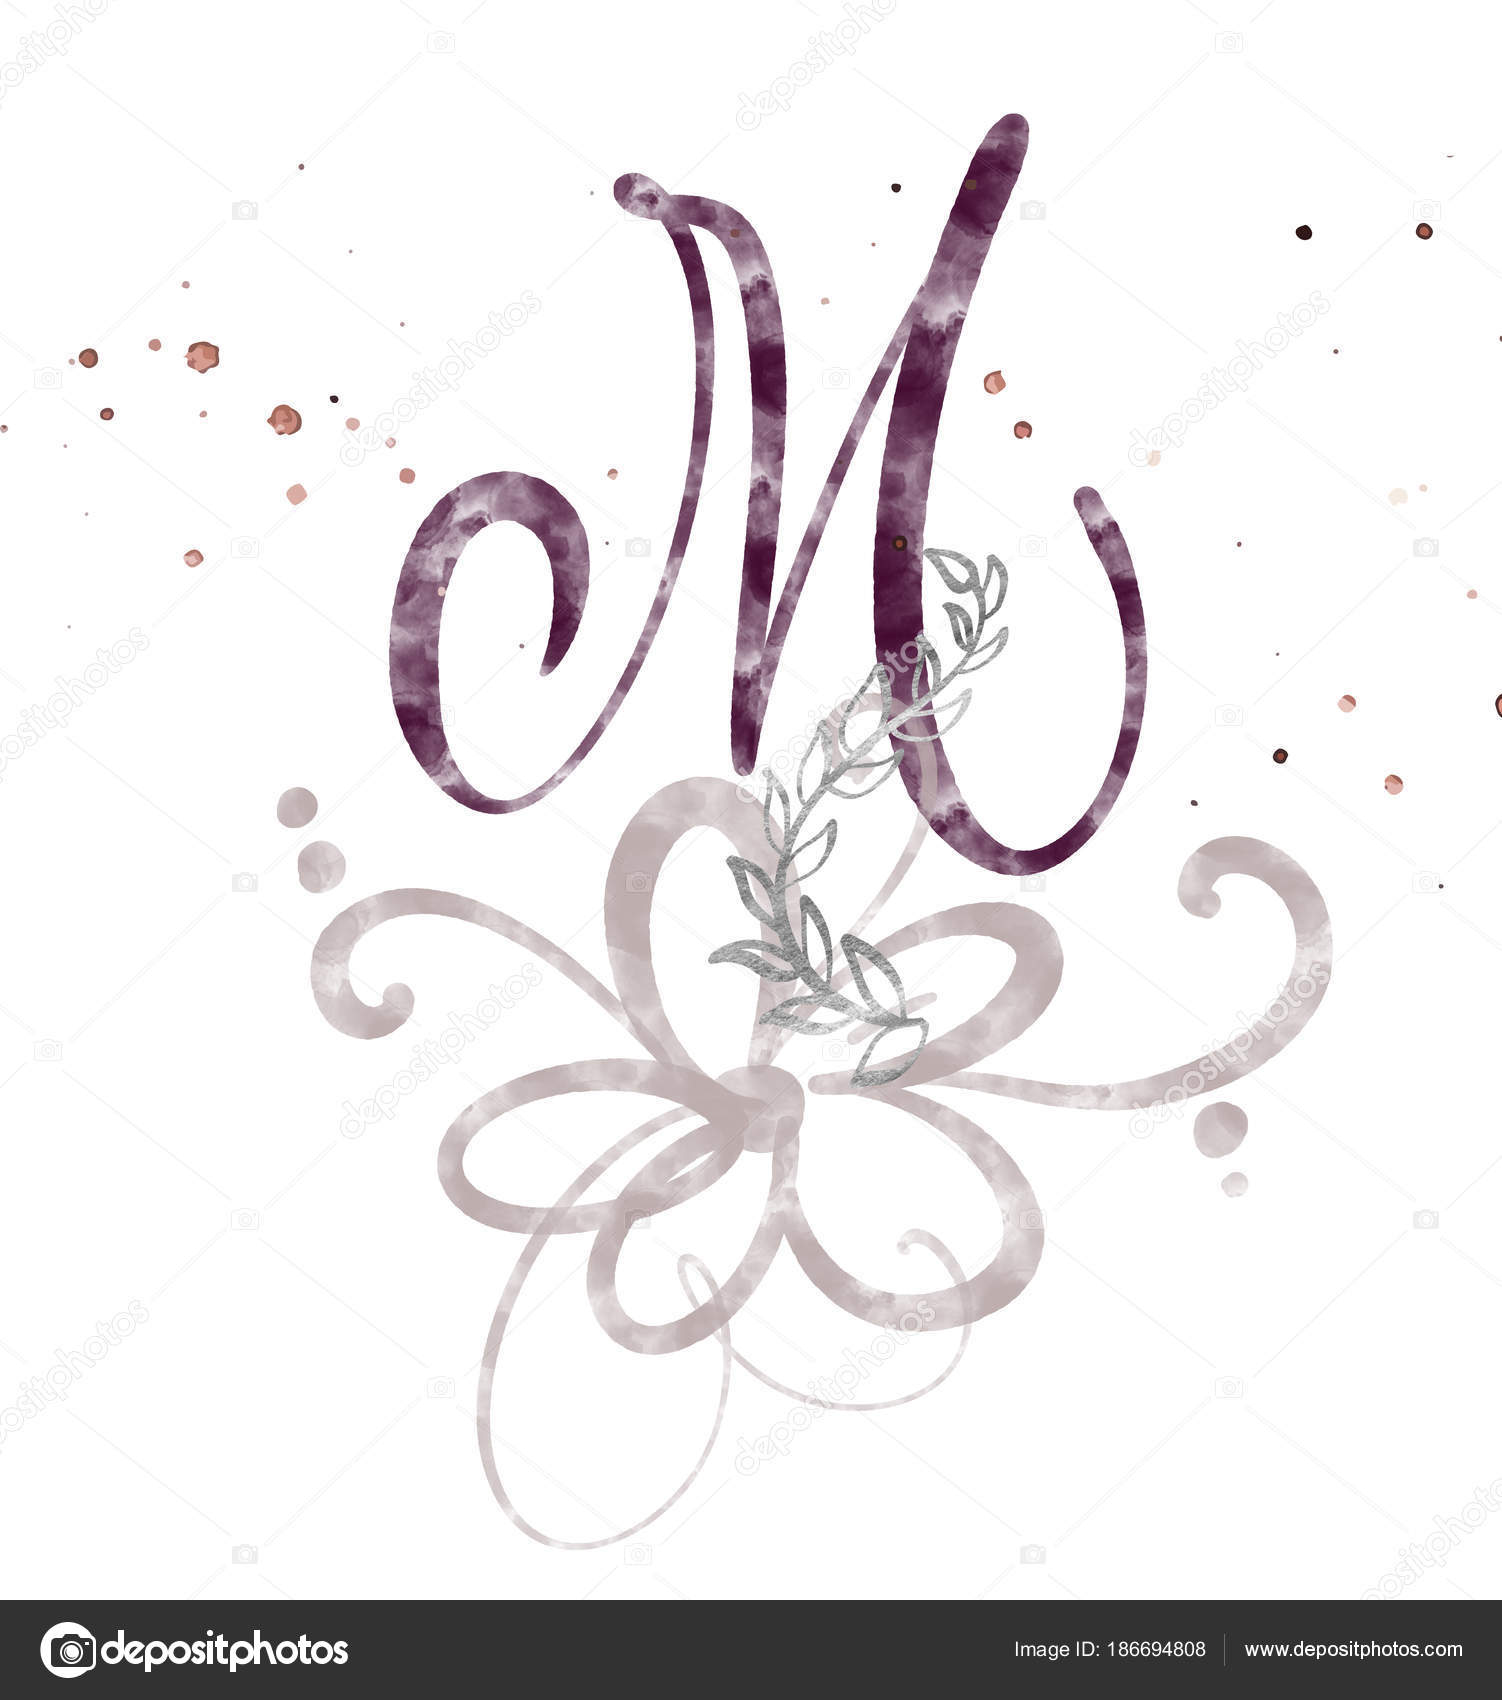 Hand Drawn Calligraphy Letter M Watercolor Script Font Isolated Letters Written With Ink